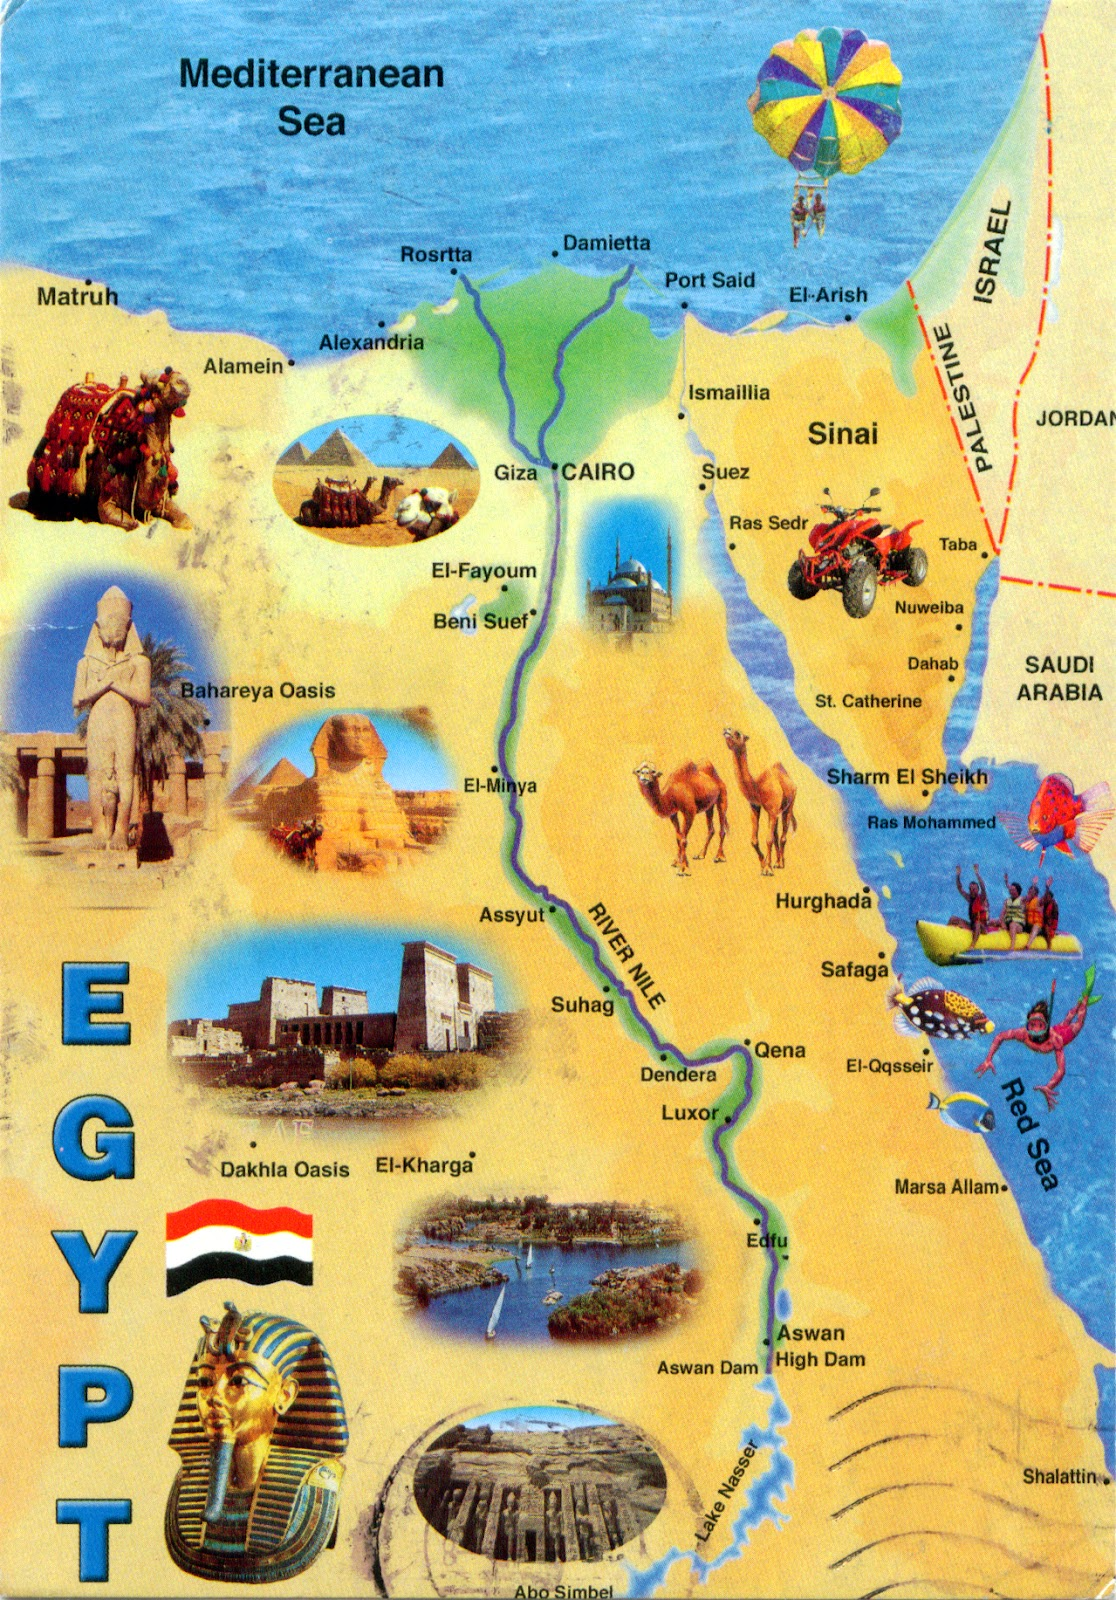 WORLD COME TO MY HOME EGYPT The Map Of The Two Lands - Map of egypt old kingdom